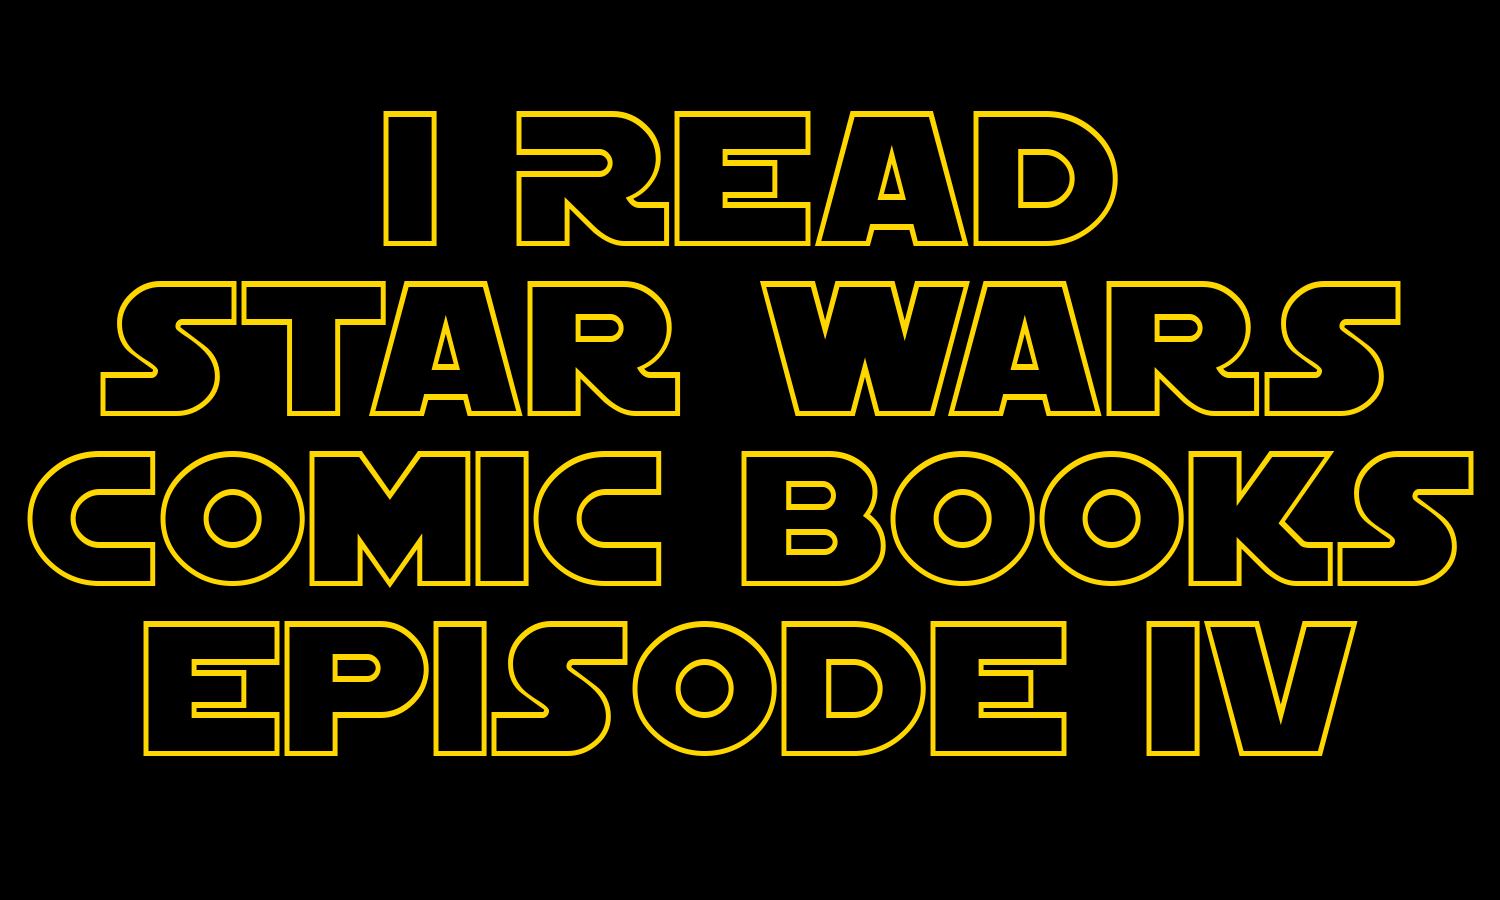 I Read Star Wars Comic Books Episode IV | Film adaptation comics